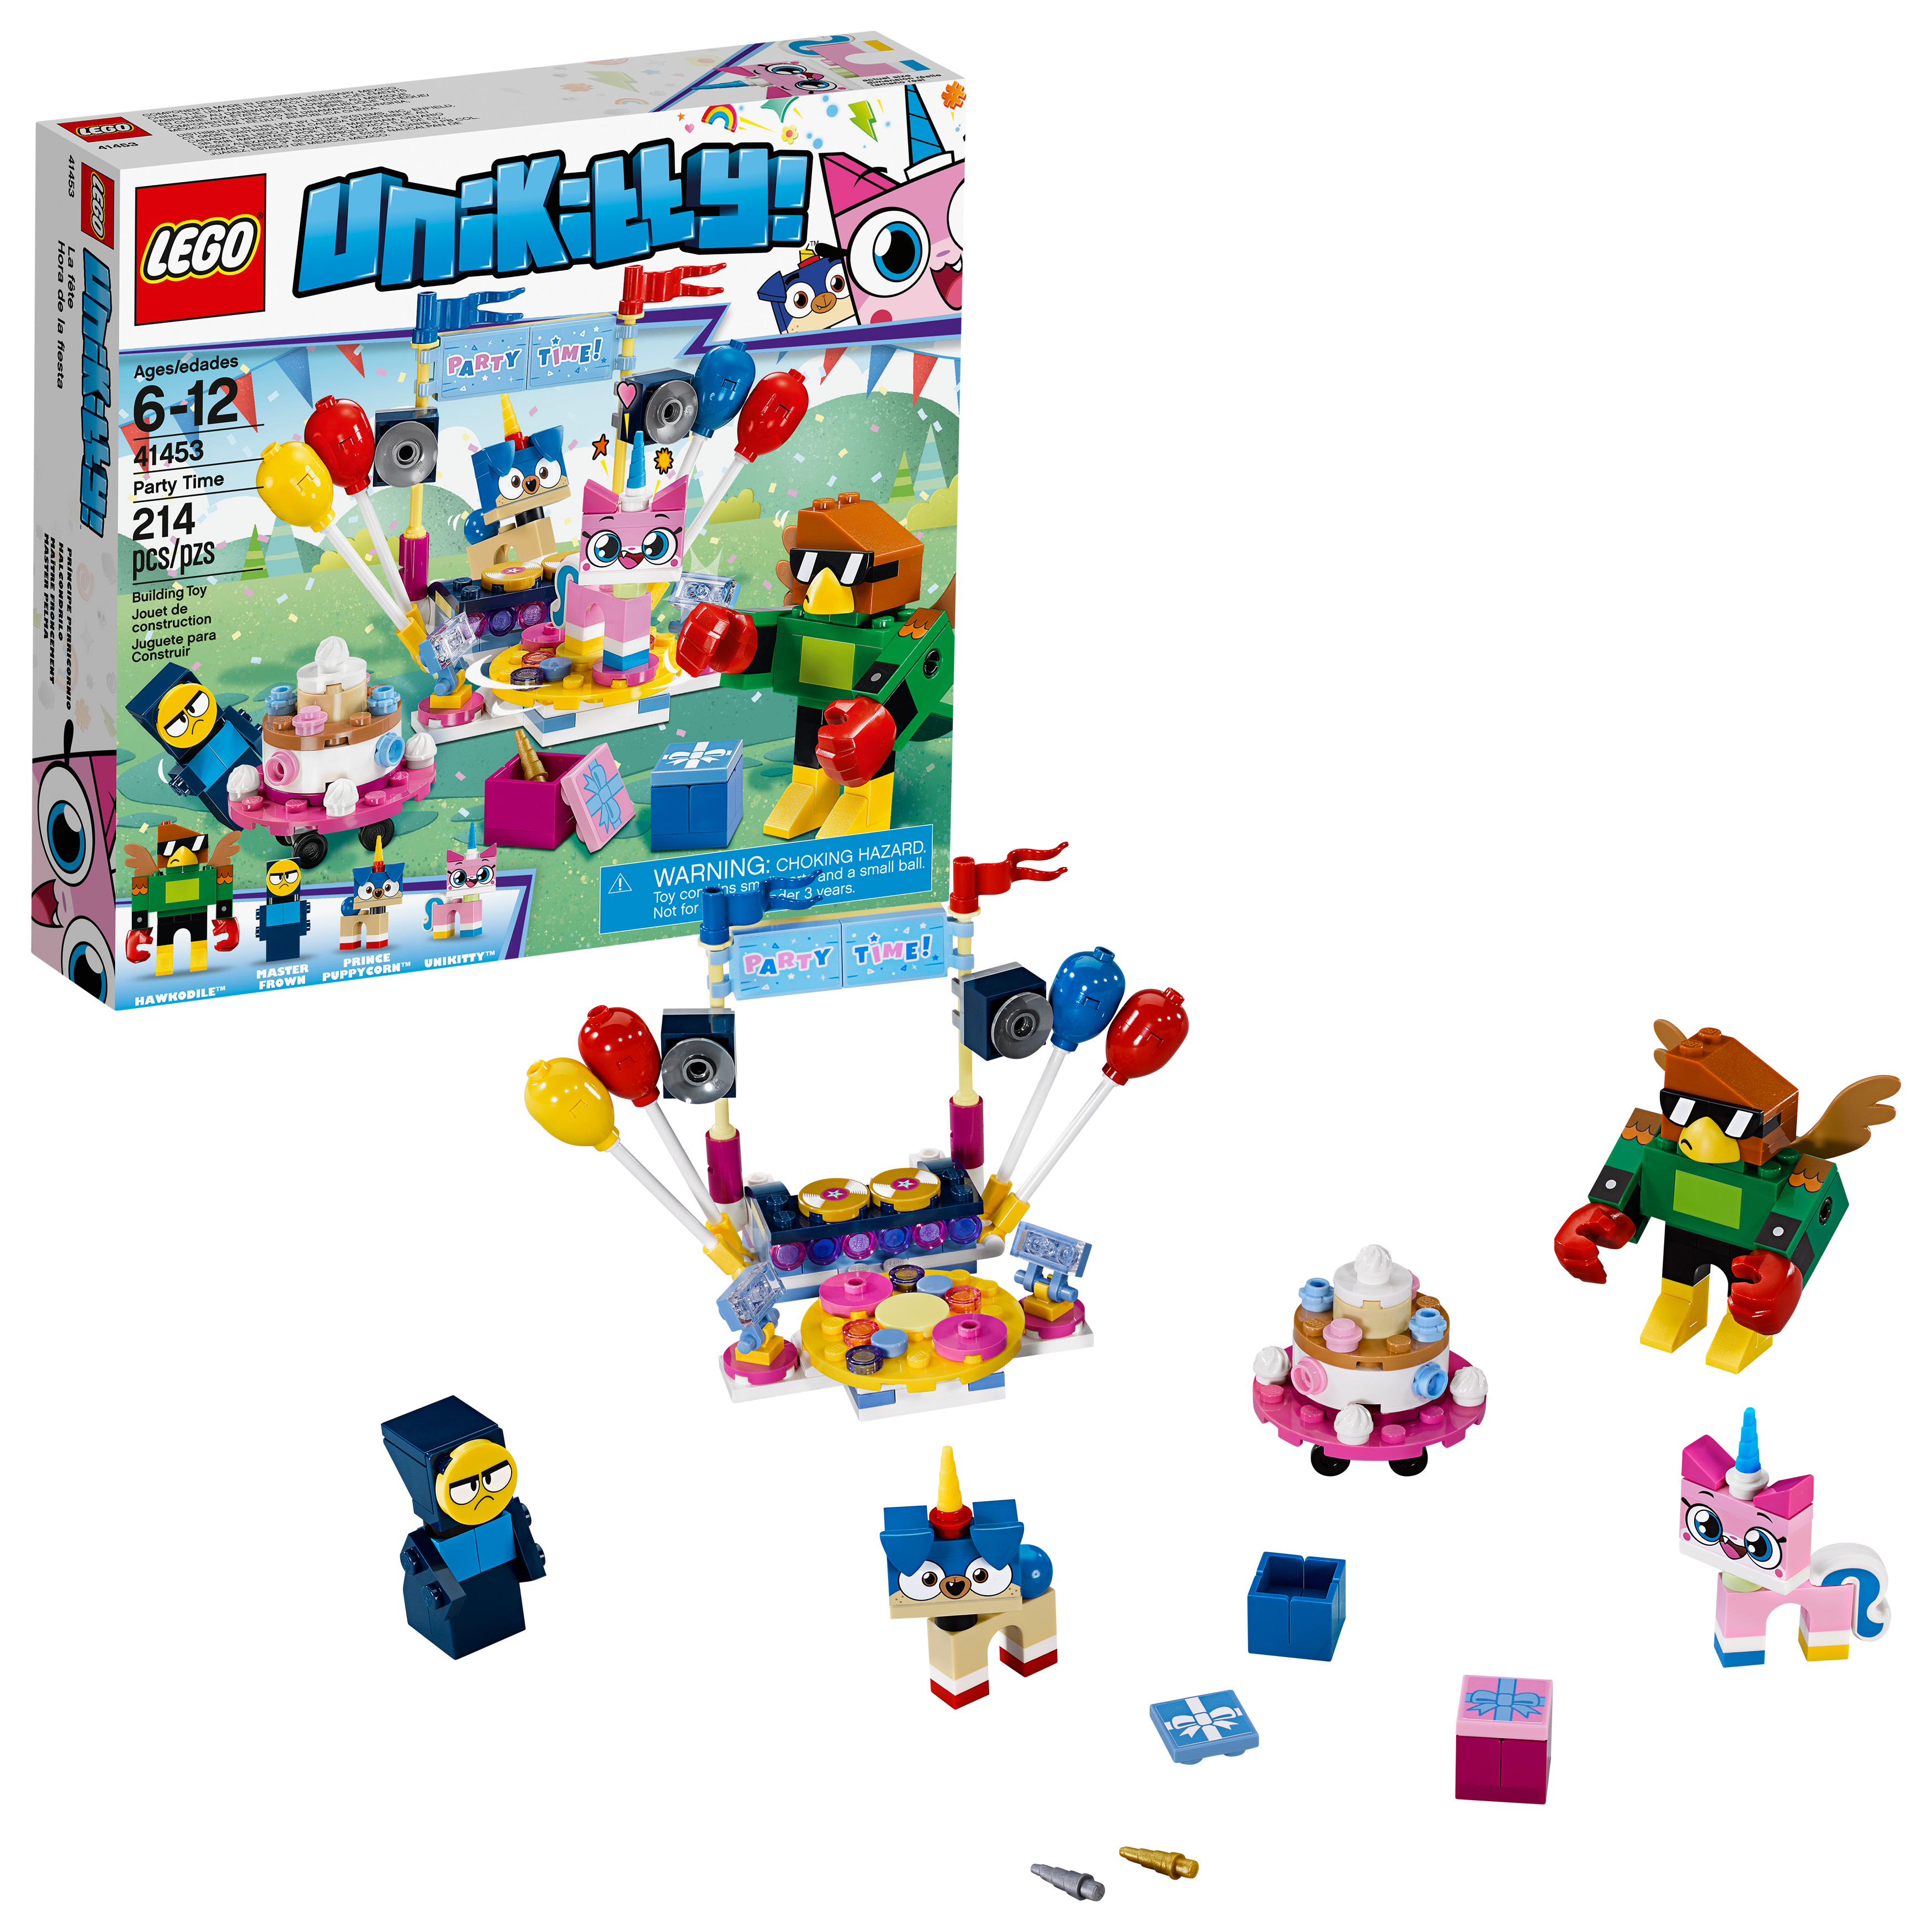 LEGO Unikitty Party Time 41453 Building Set (214 Pieces)